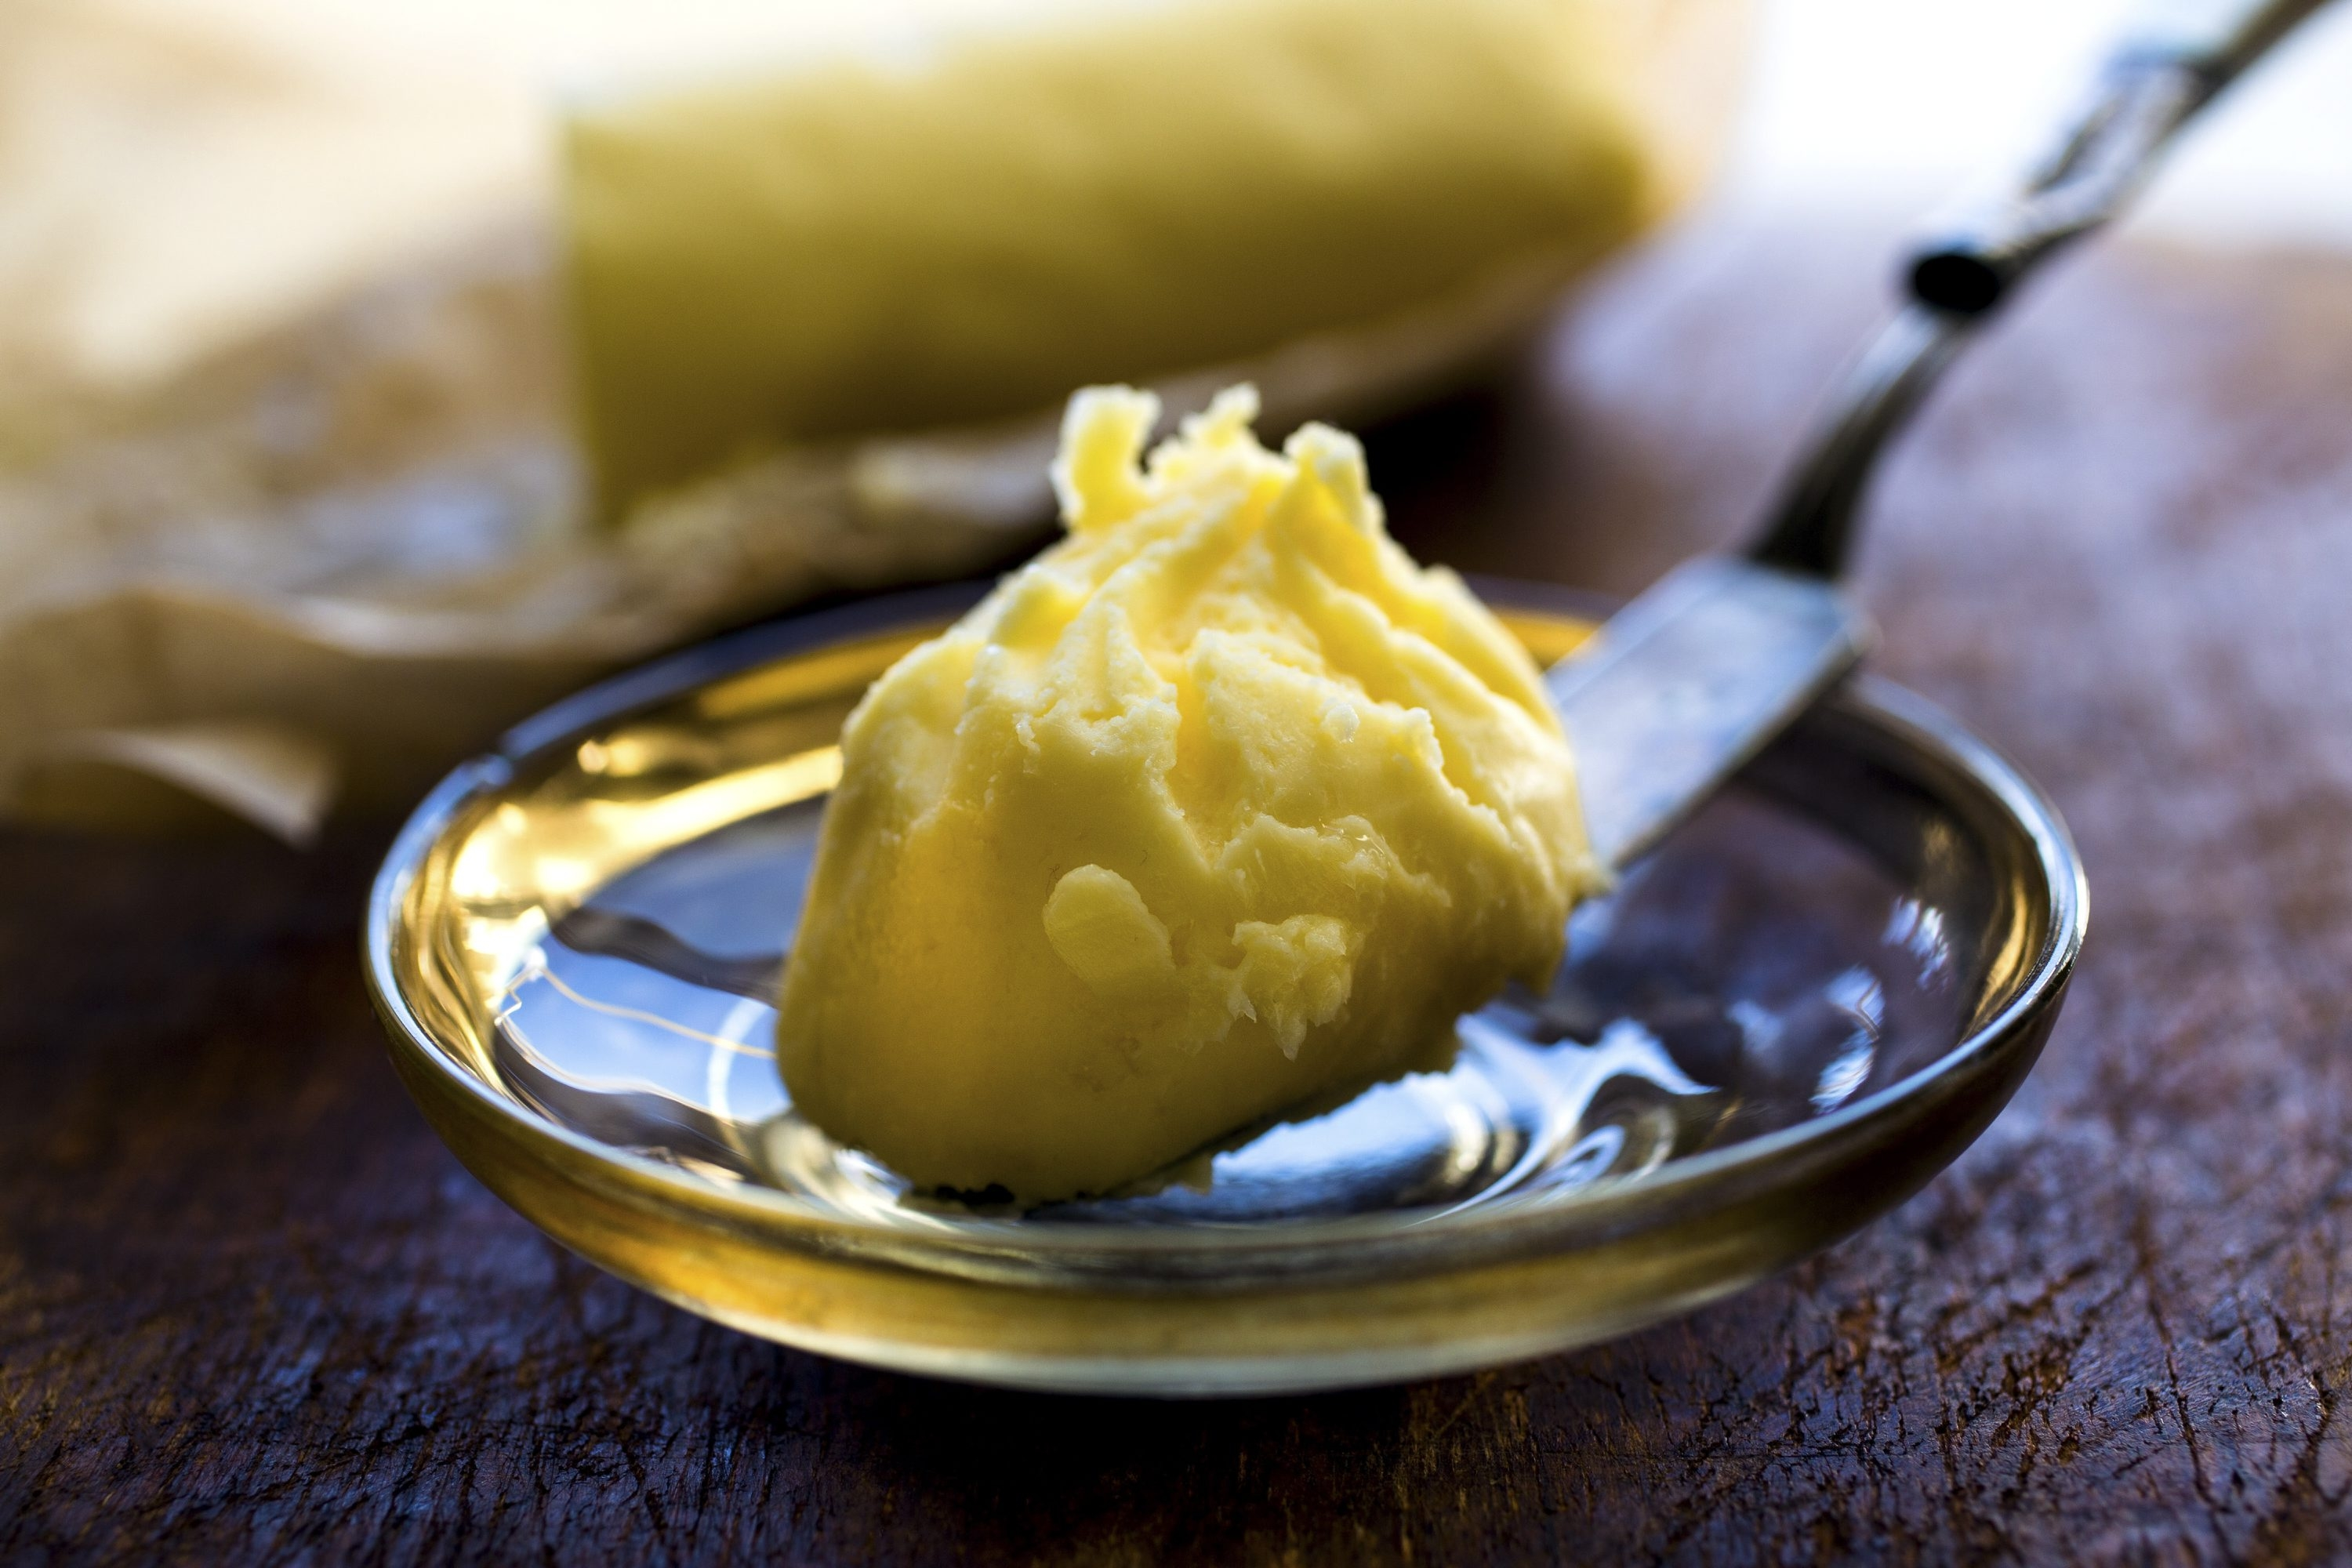 A scoop of homemade cultured butter, ultra-creamy and nutty flavored.